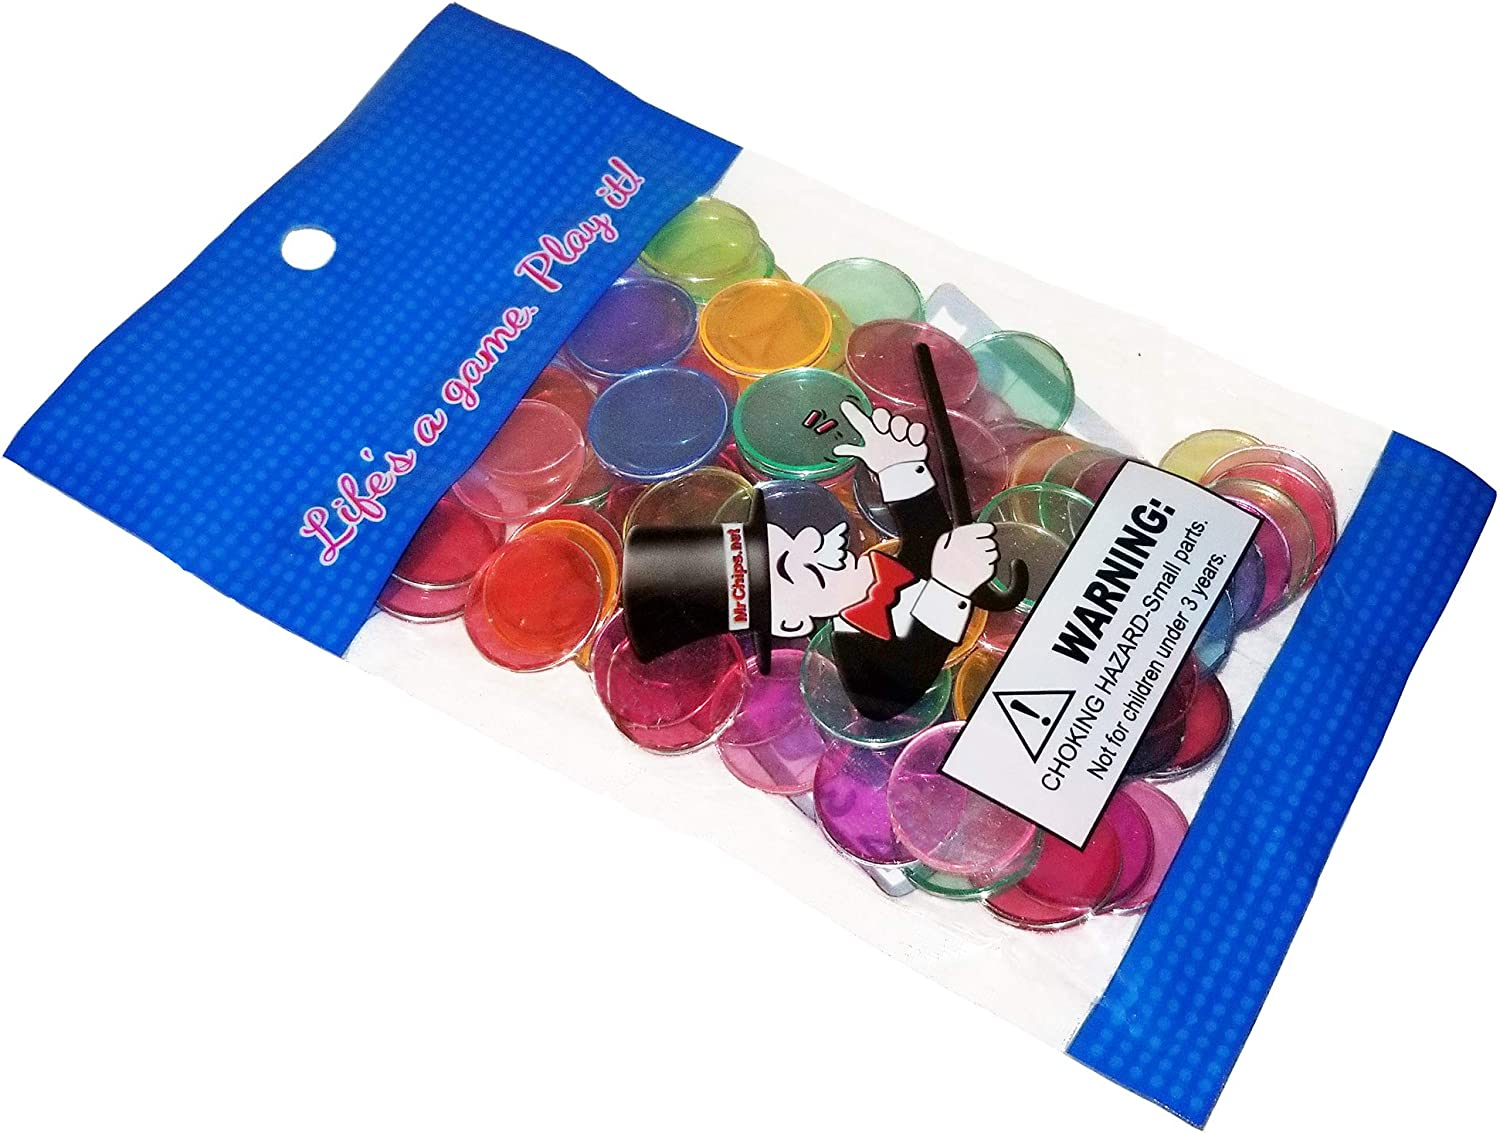 100pcs MR CHIPS Magnetic Bingo Chips Metal Edge Available in 7 Colors in A Reusable Bag 3//4